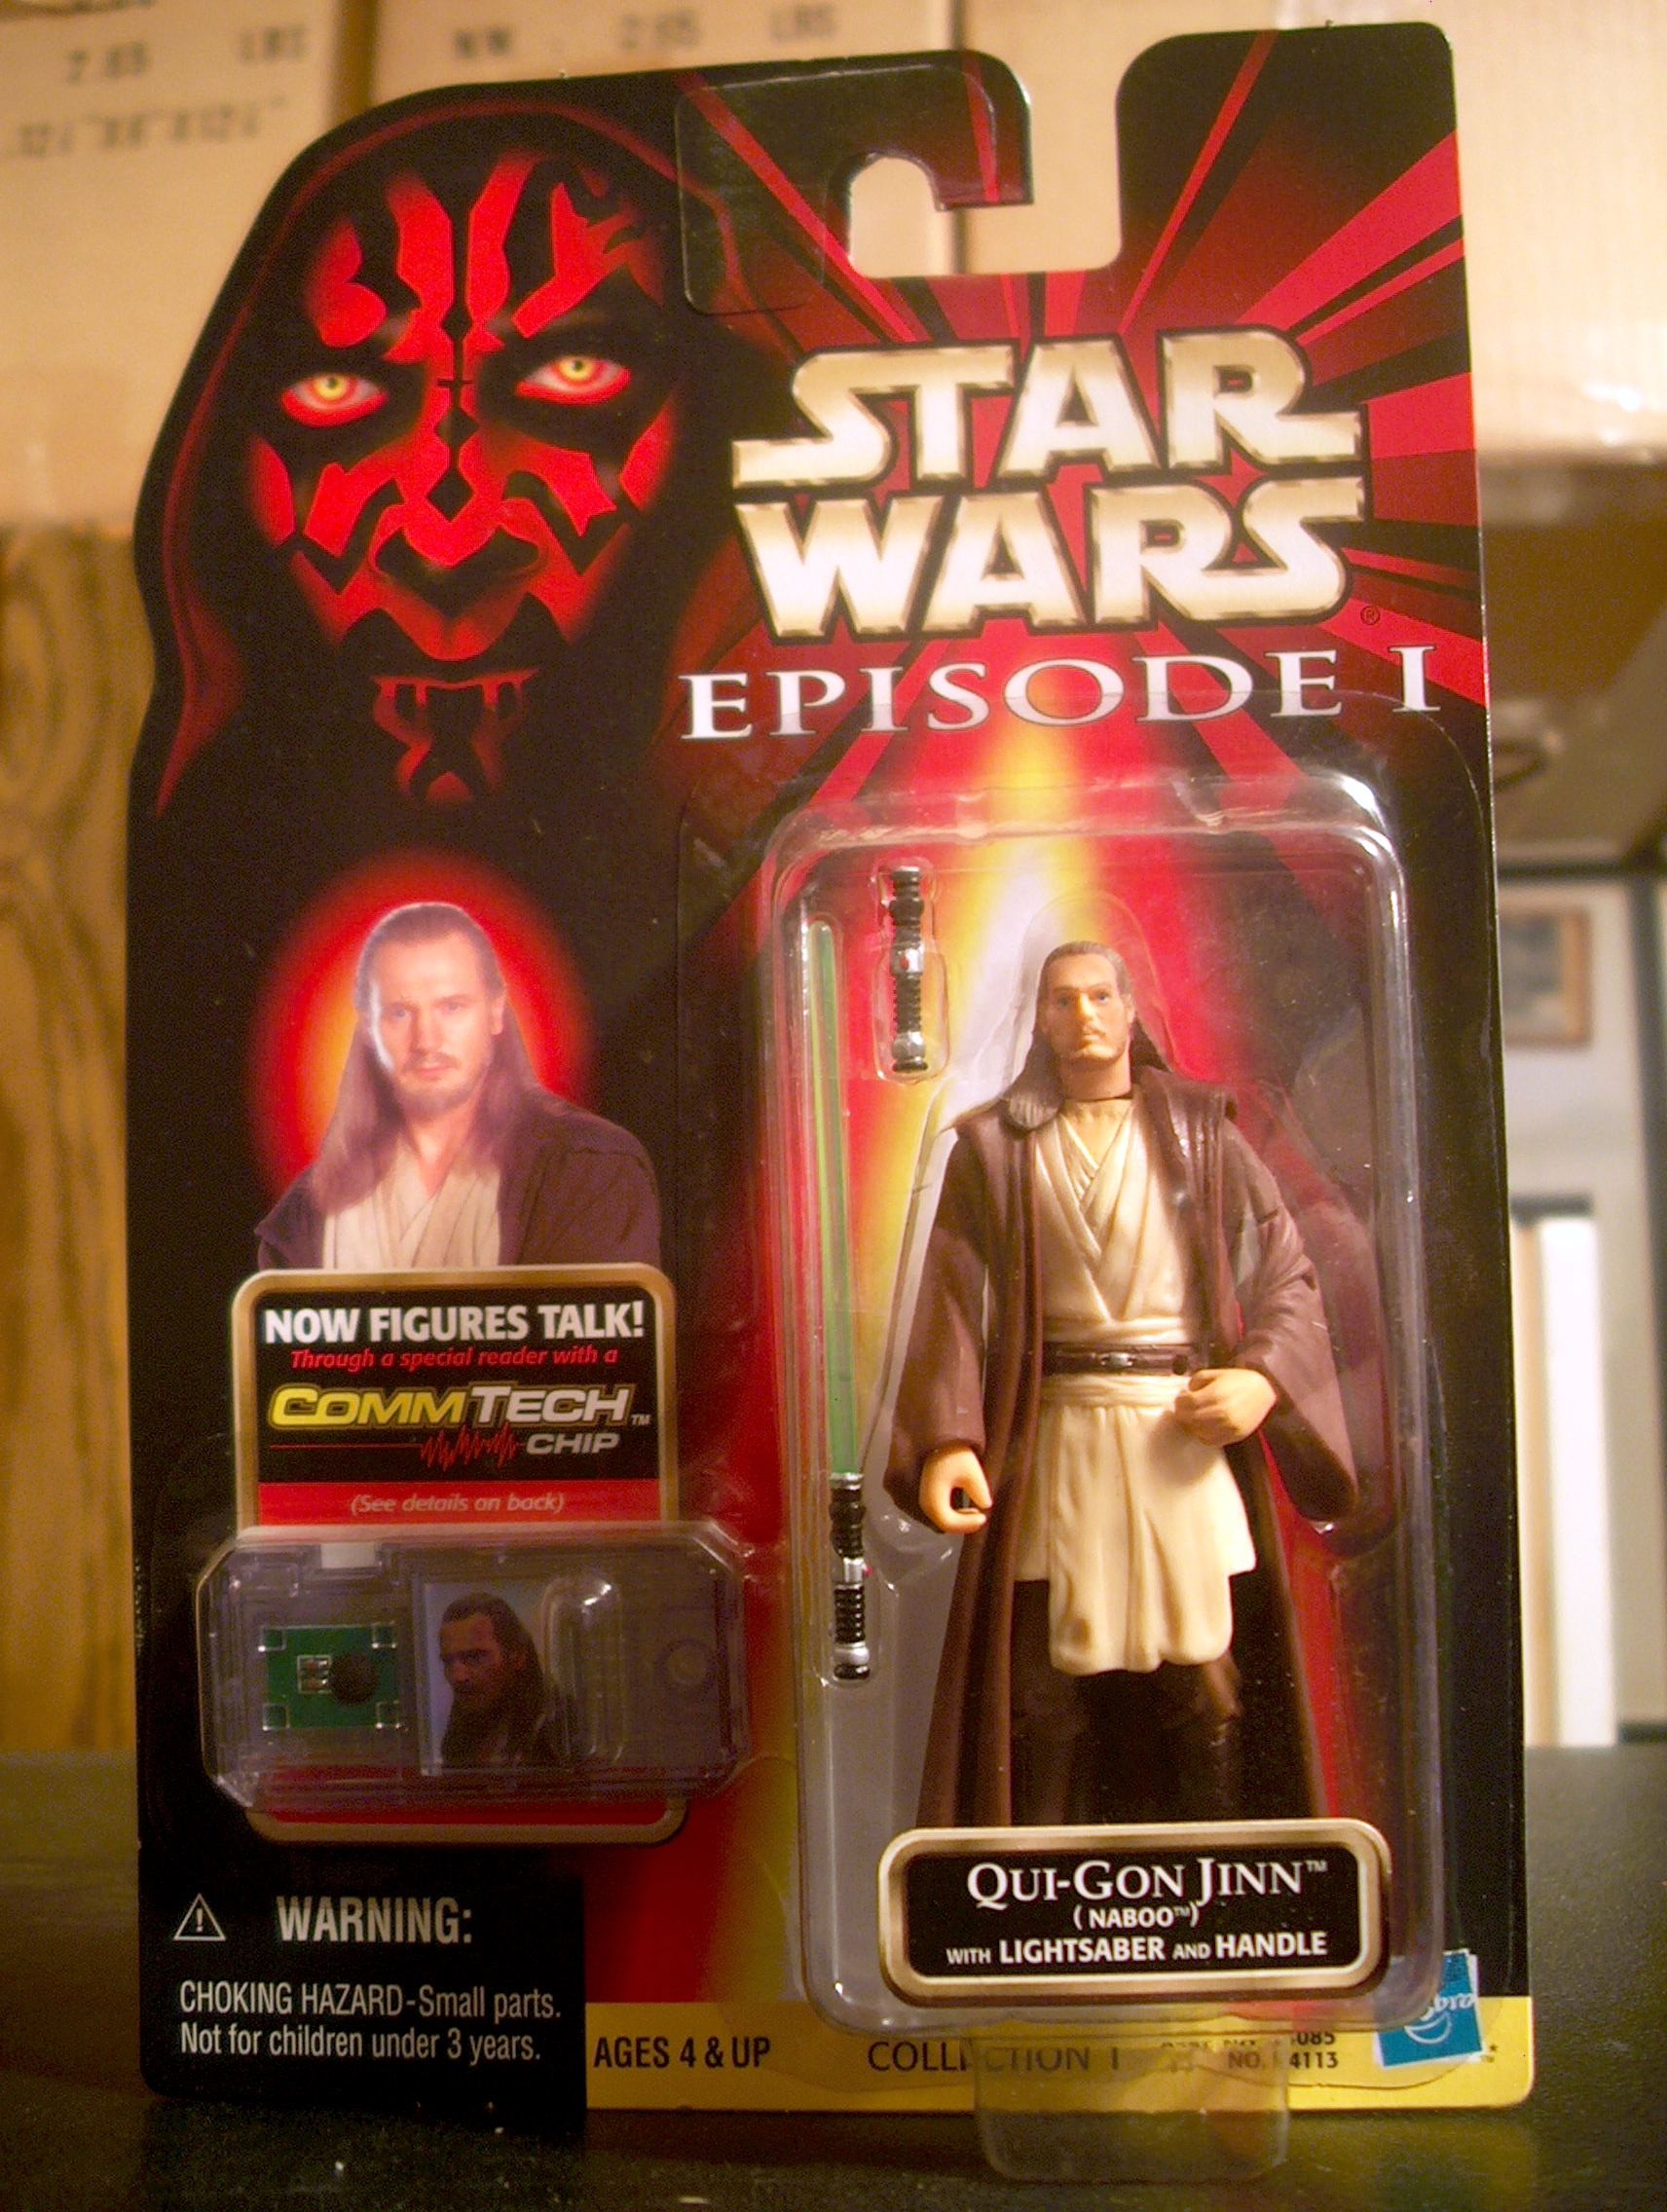 Qui-Gon Jinn (Naboo) with Lightsaber and Handle (.0100)